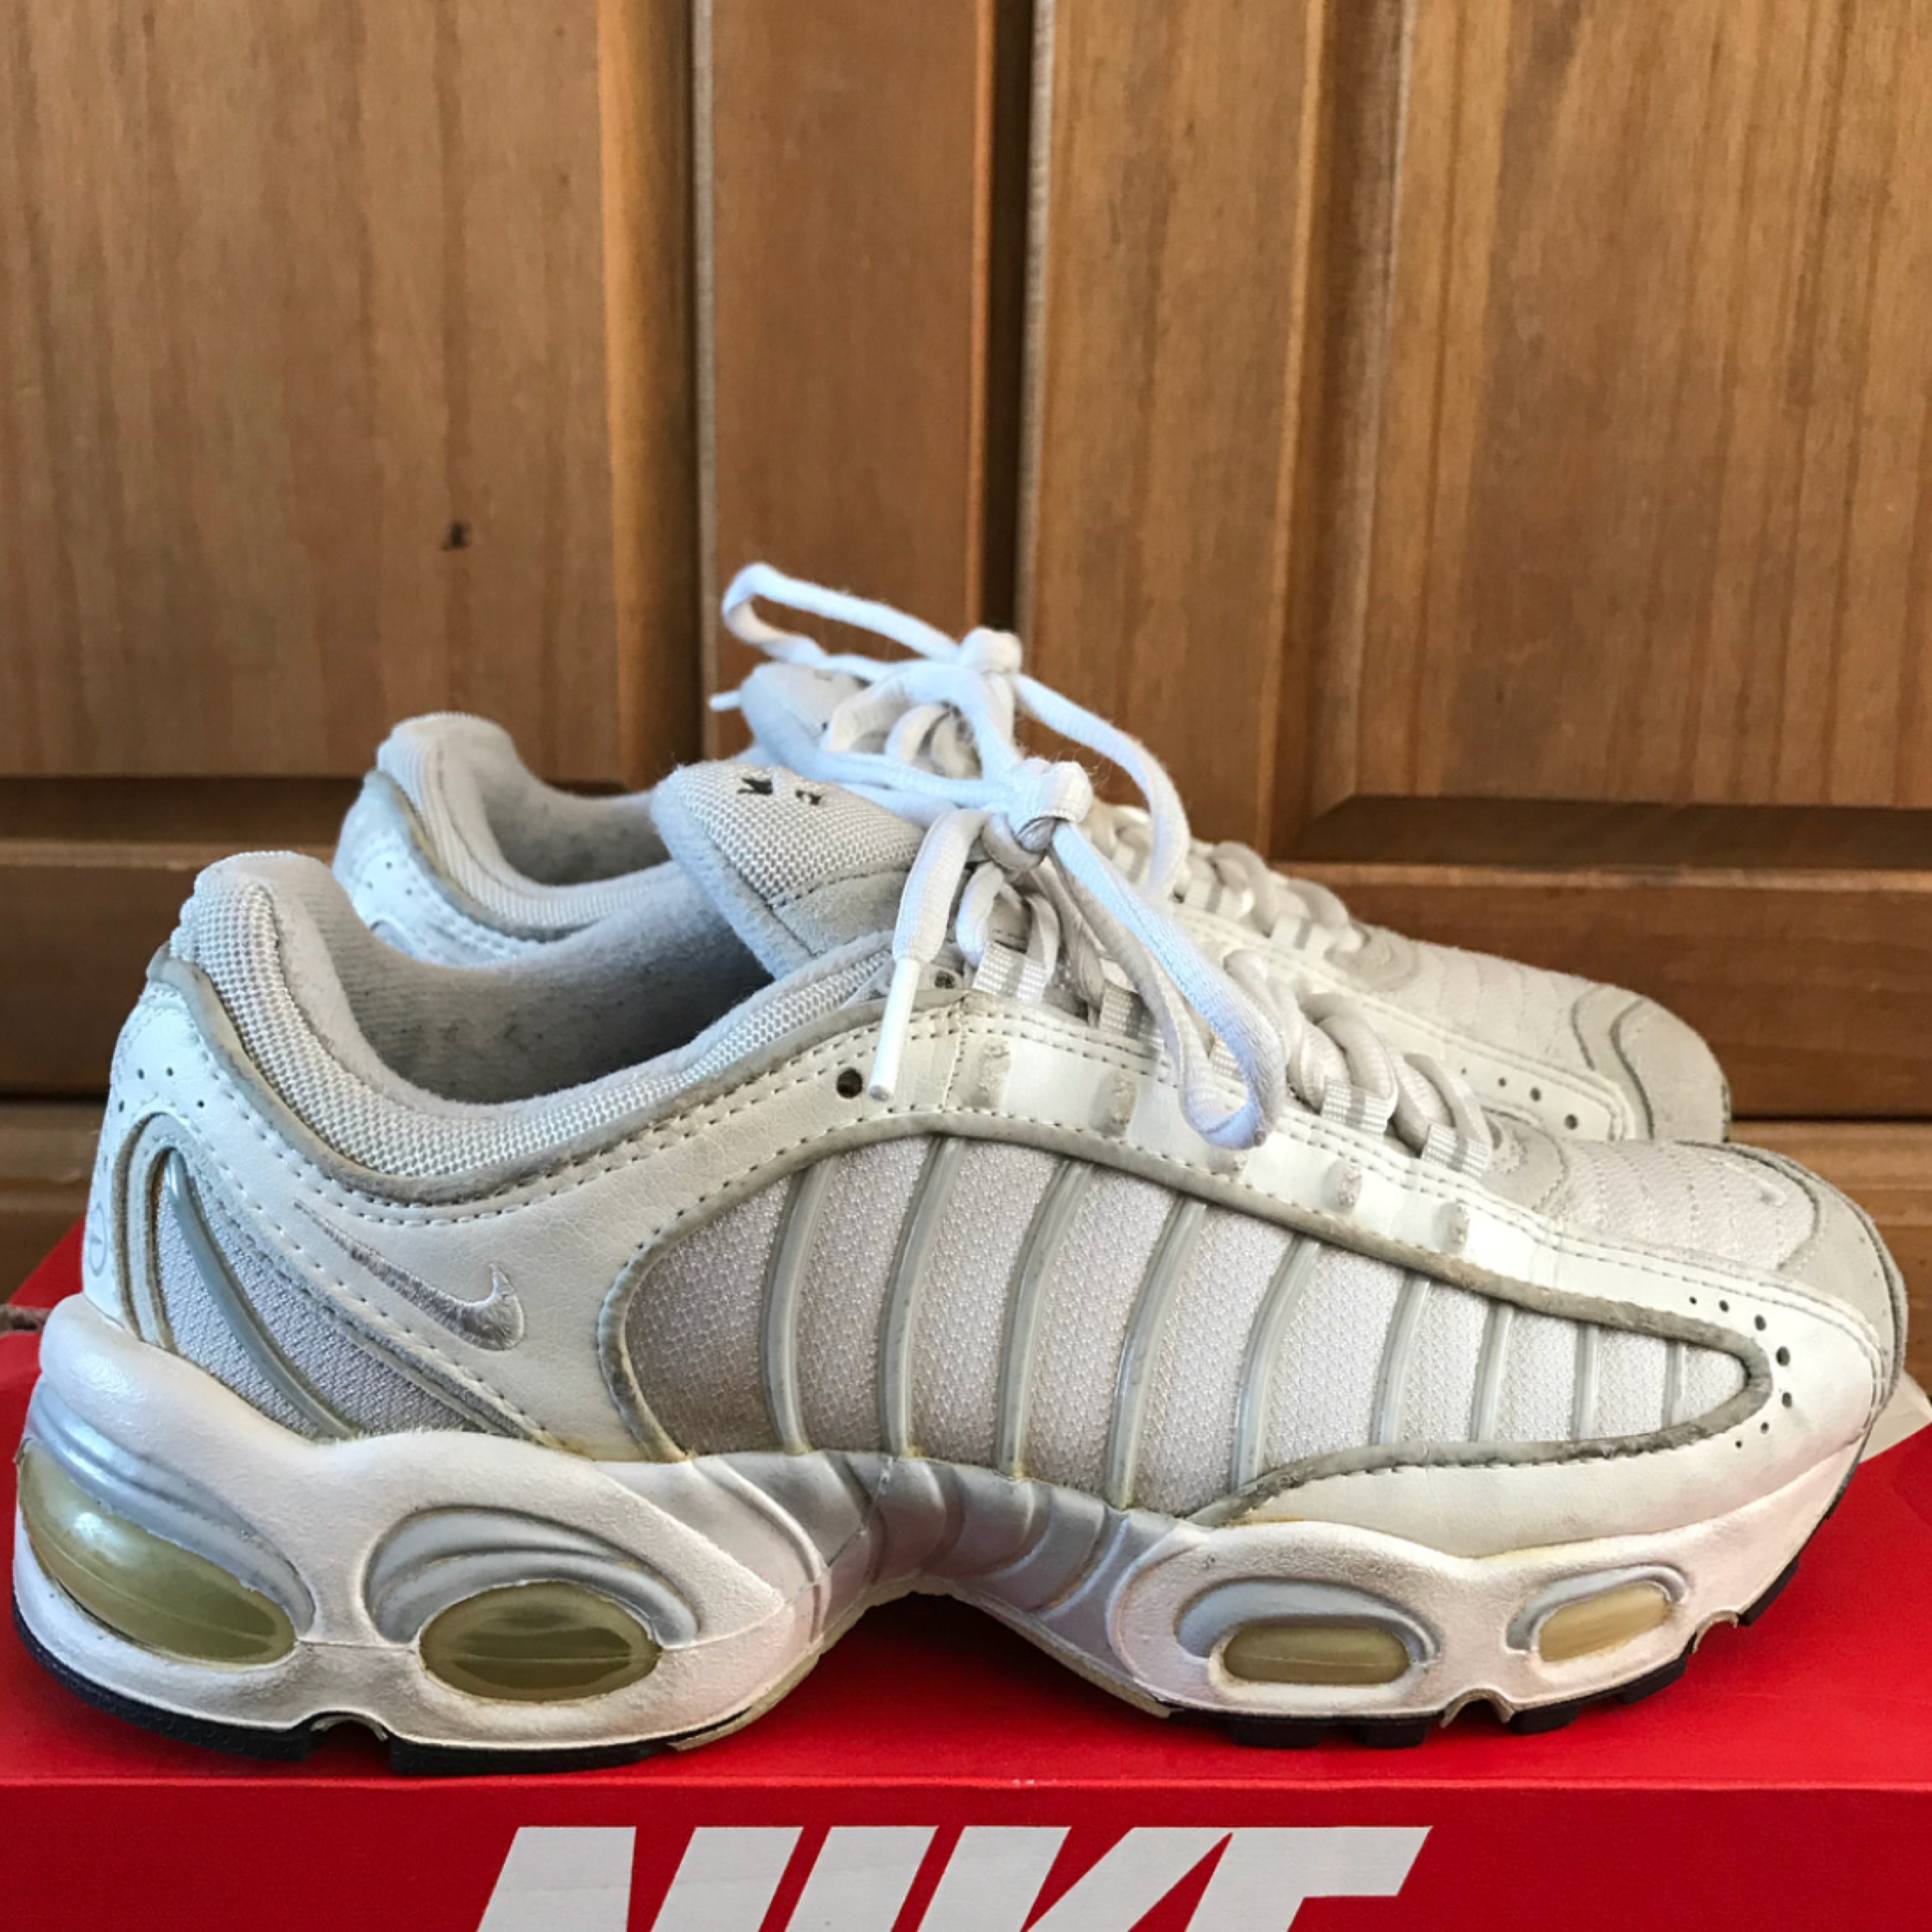 Nike Air Max Tailwind Iv 2000 Size Uk6